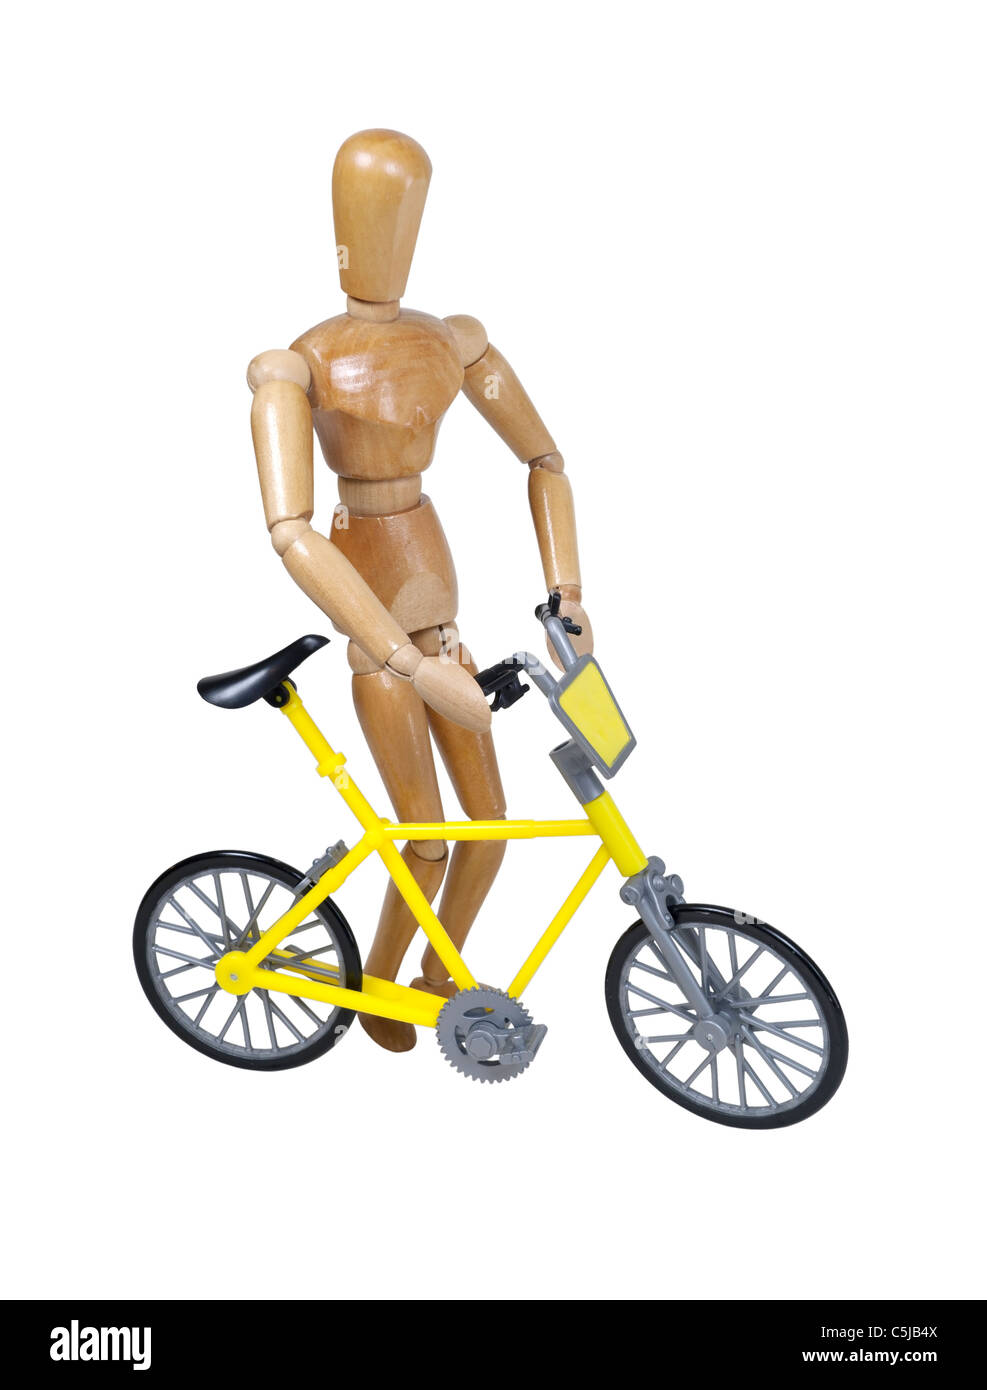 Walking a yellow bicycle used as a personal transportation device - path included - Stock Image